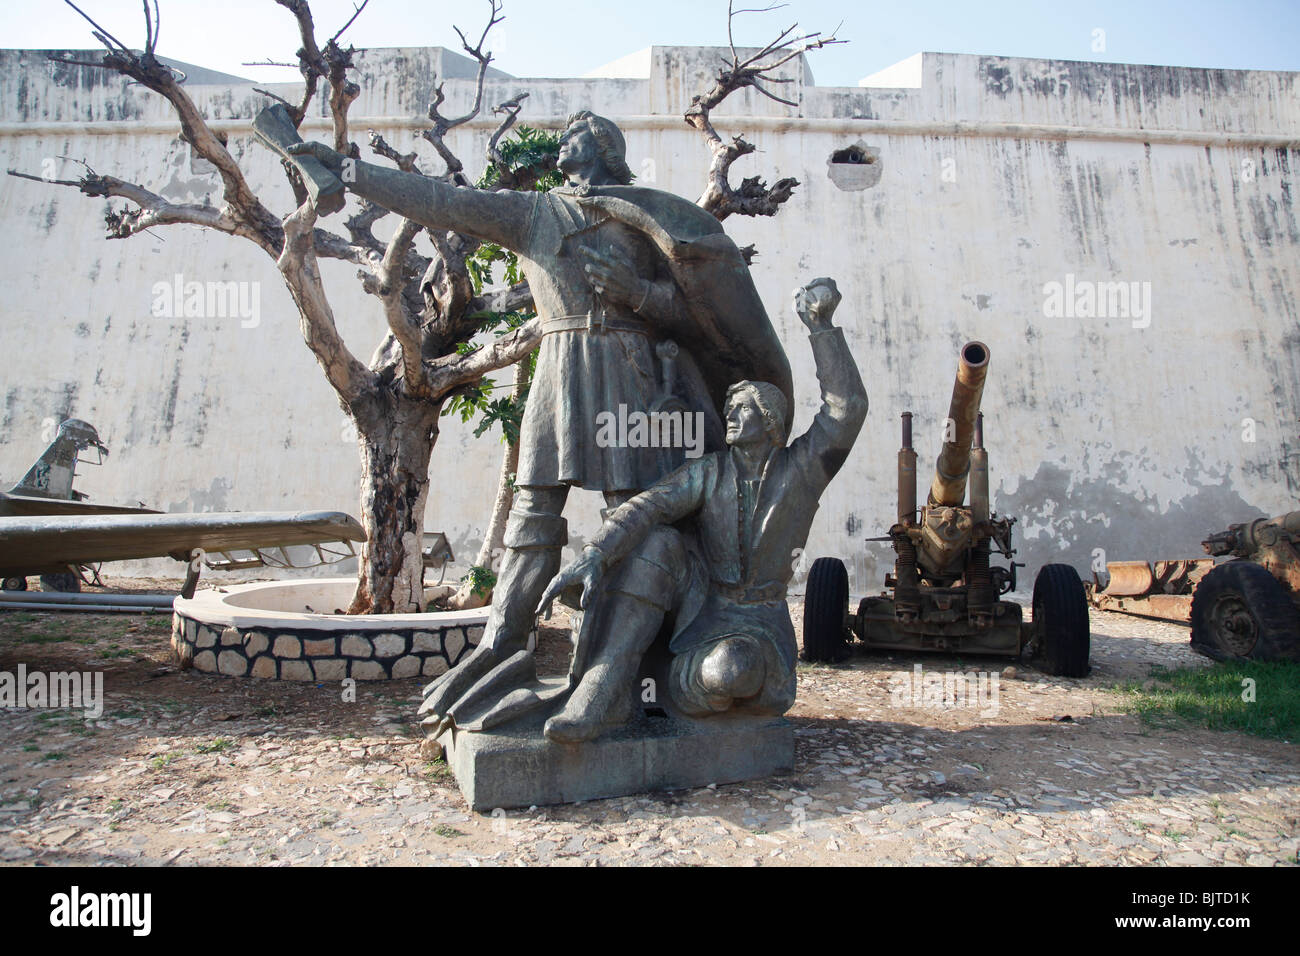 Monuments and Statues outside the Fortaleza de Sao Miguel. Luanda. Angola. Africa. - Stock Image